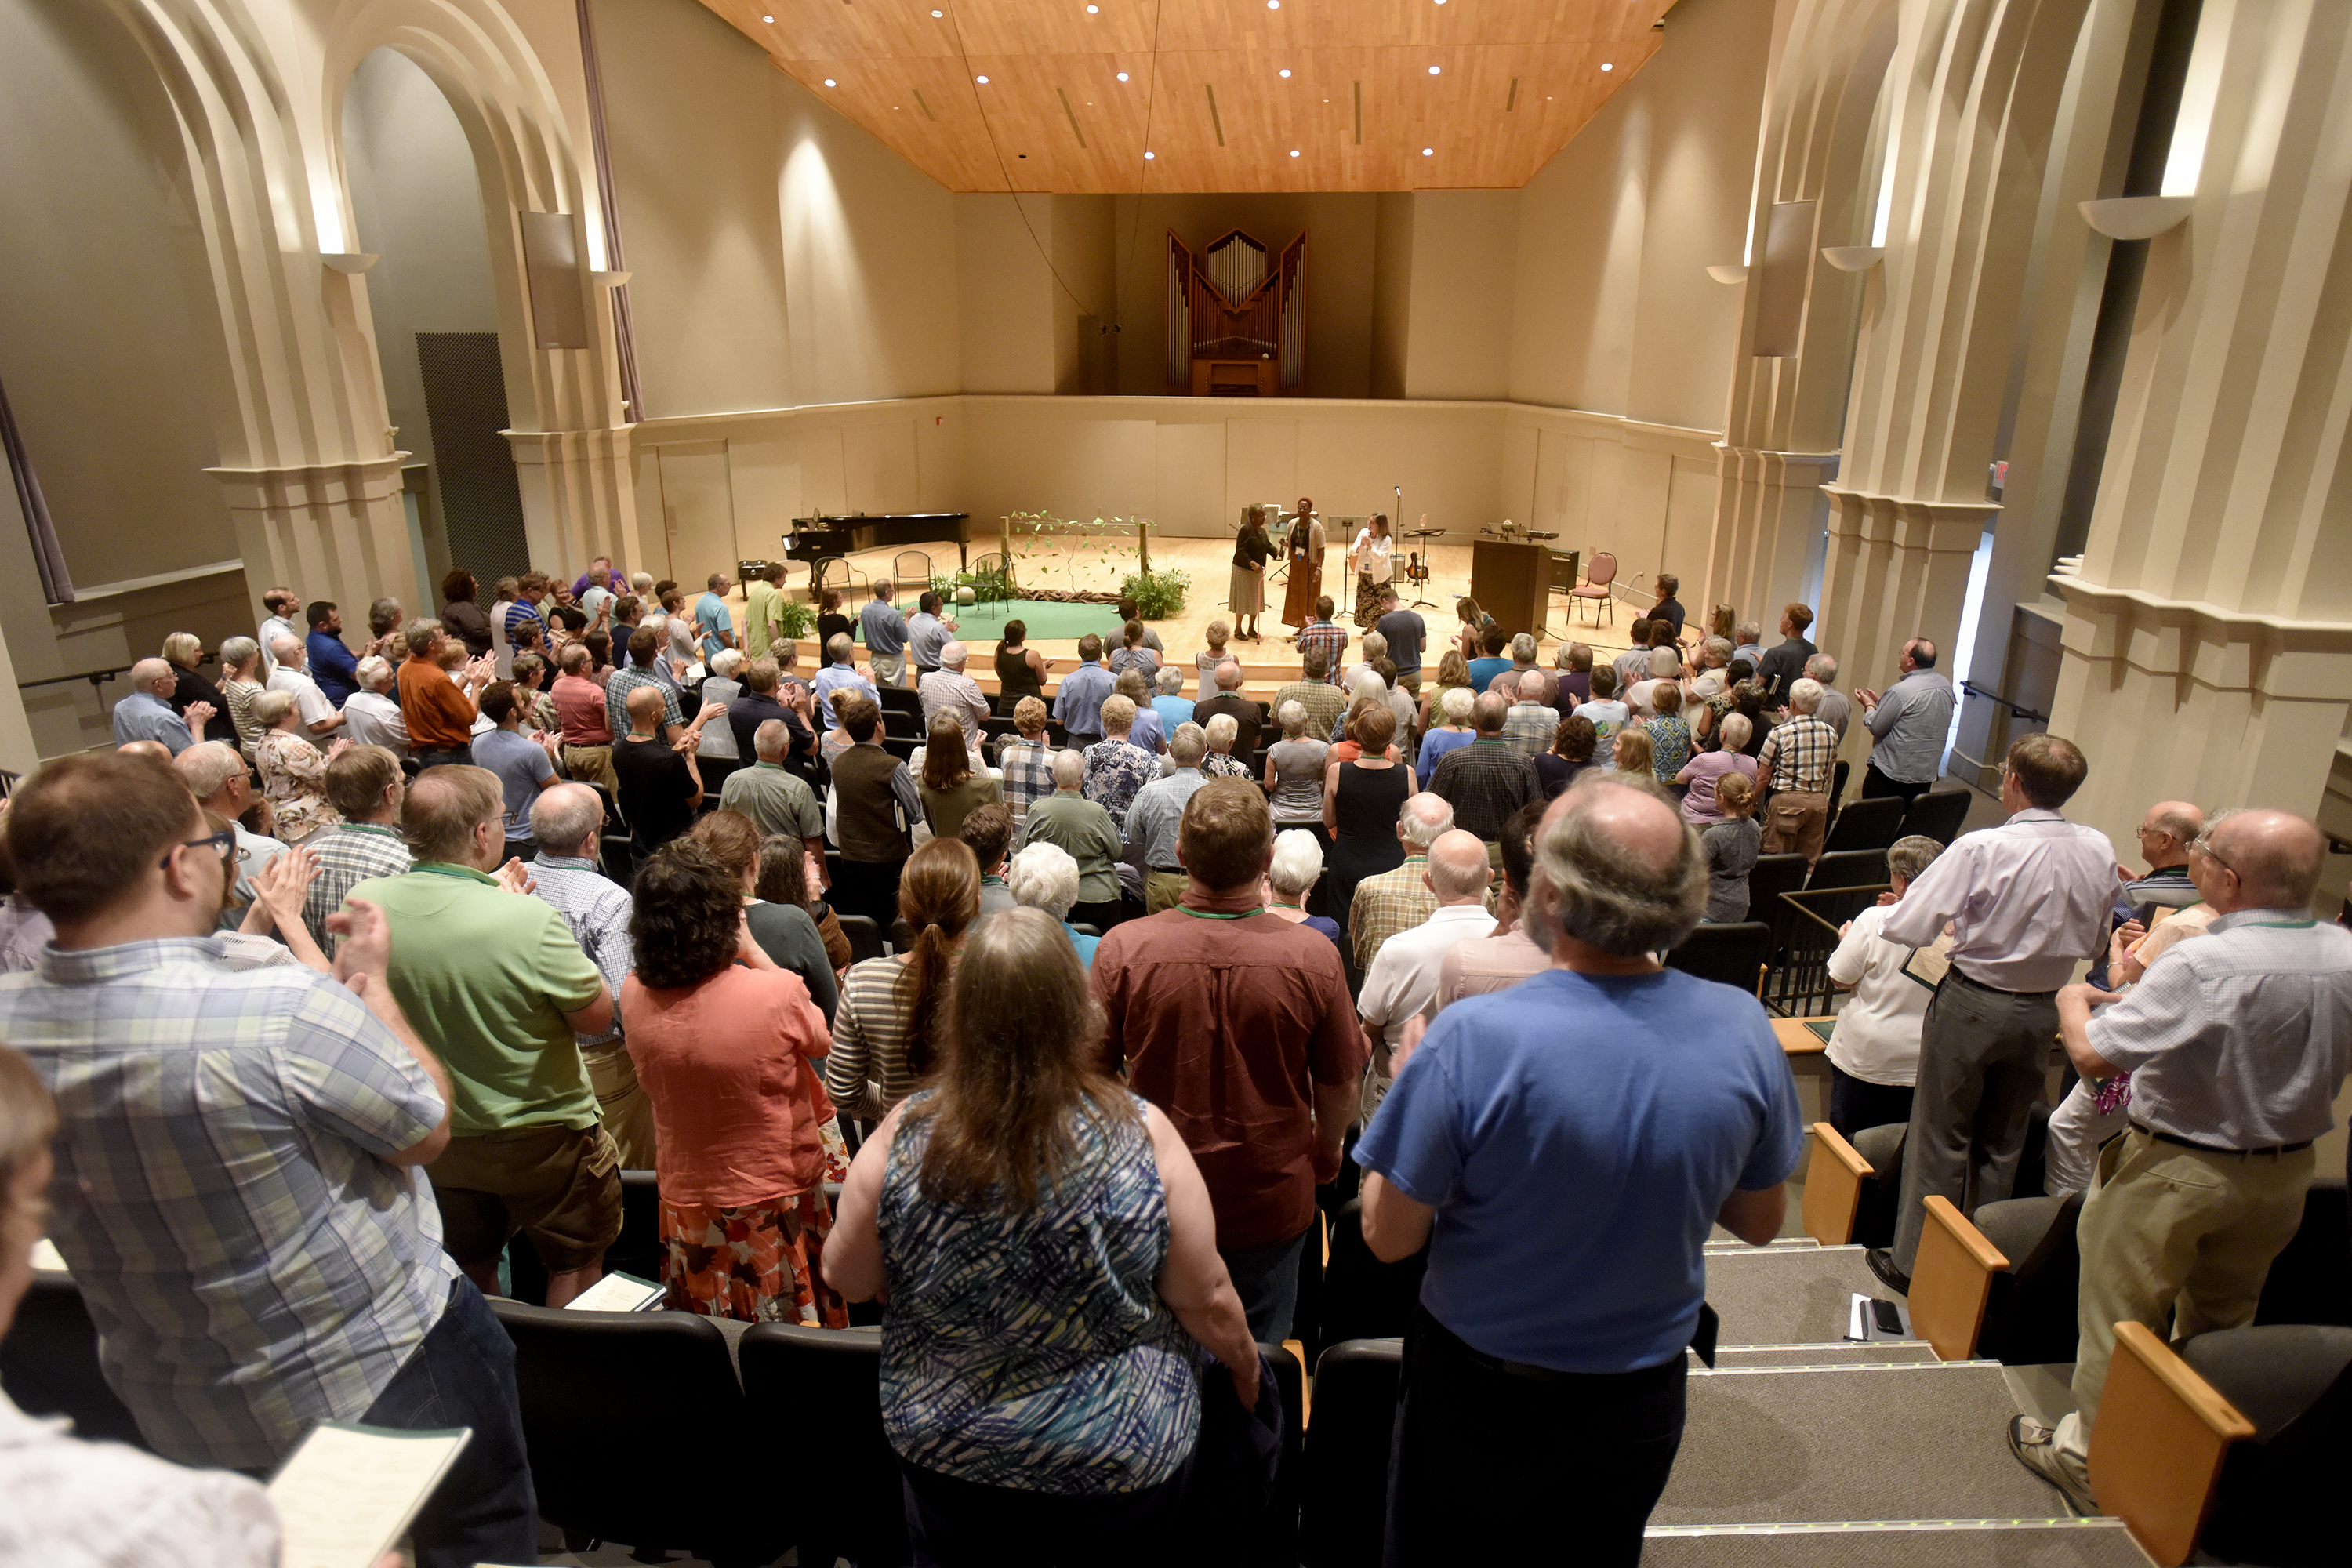 Participants in the 2017 Central District Conference worship during the Friday night service in Yoder Recital Hall, Friday, June 23, 2017, at Bluffton University, Bluffton, OH. Photograph by J. Tyler Klassen